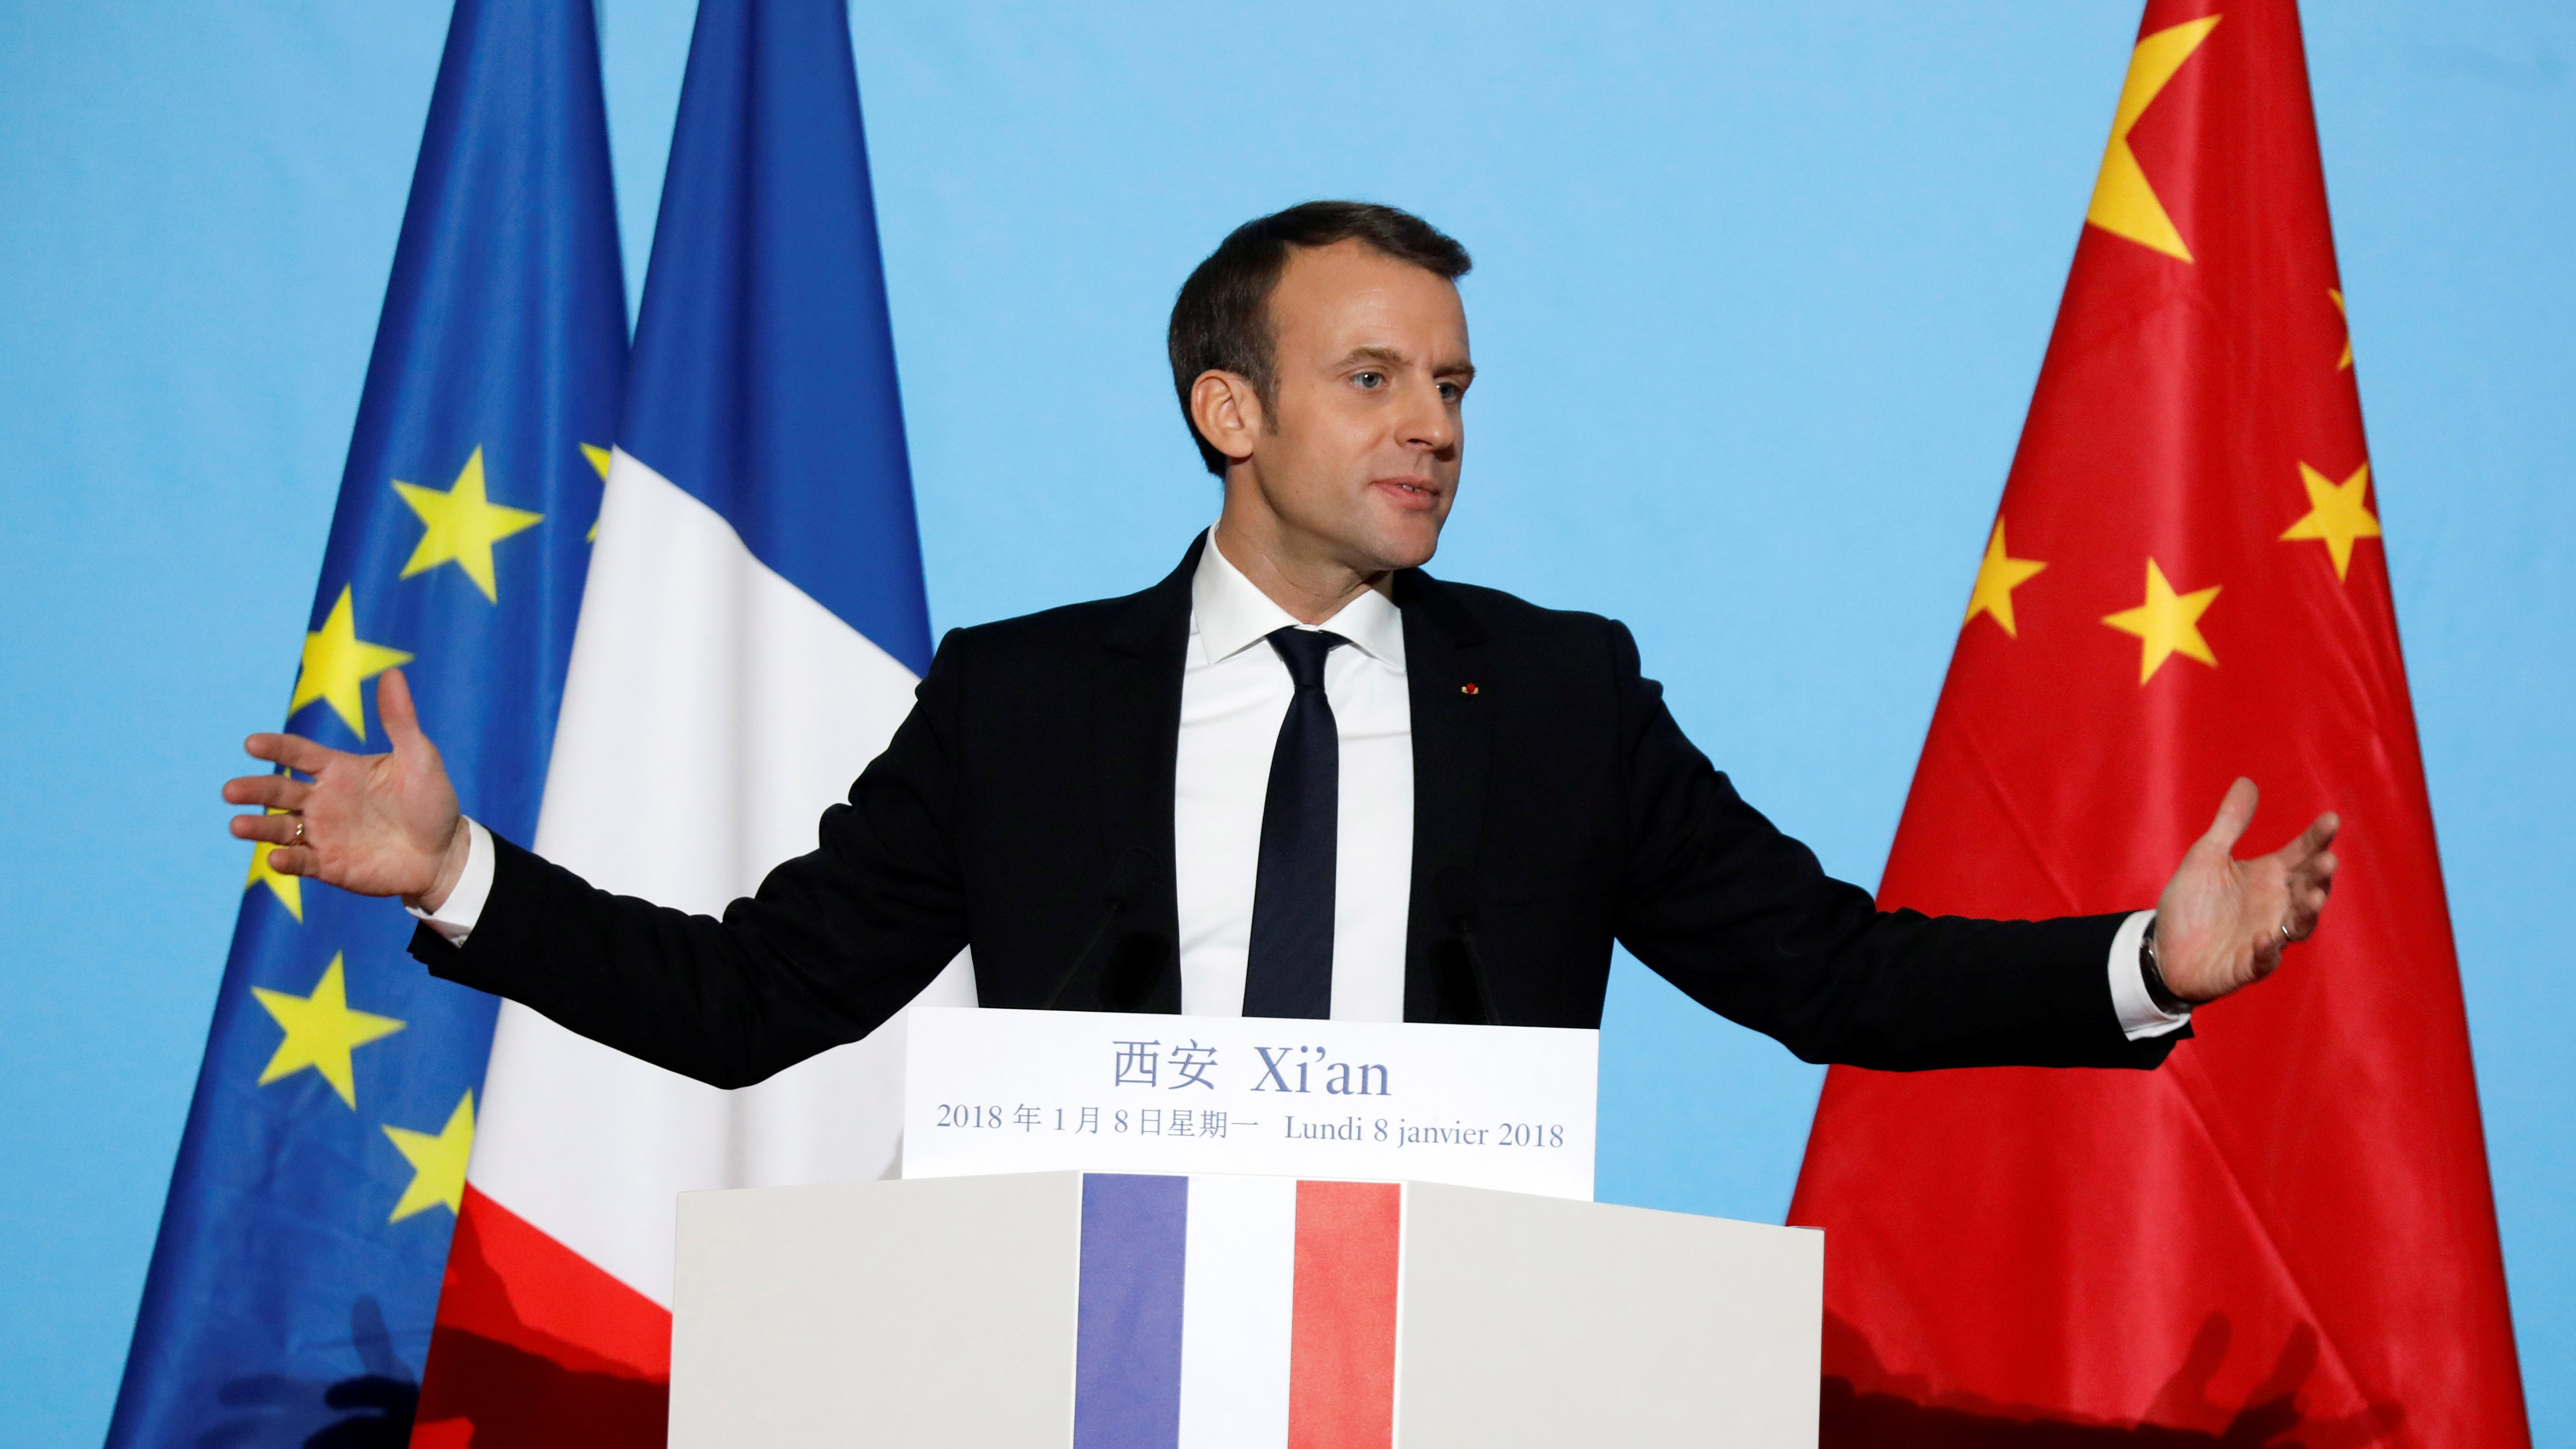 French President Emmanuel Macron delivers his speech at the Daming Palace in Xian, Shaanxi province, China, January 8, 2018.